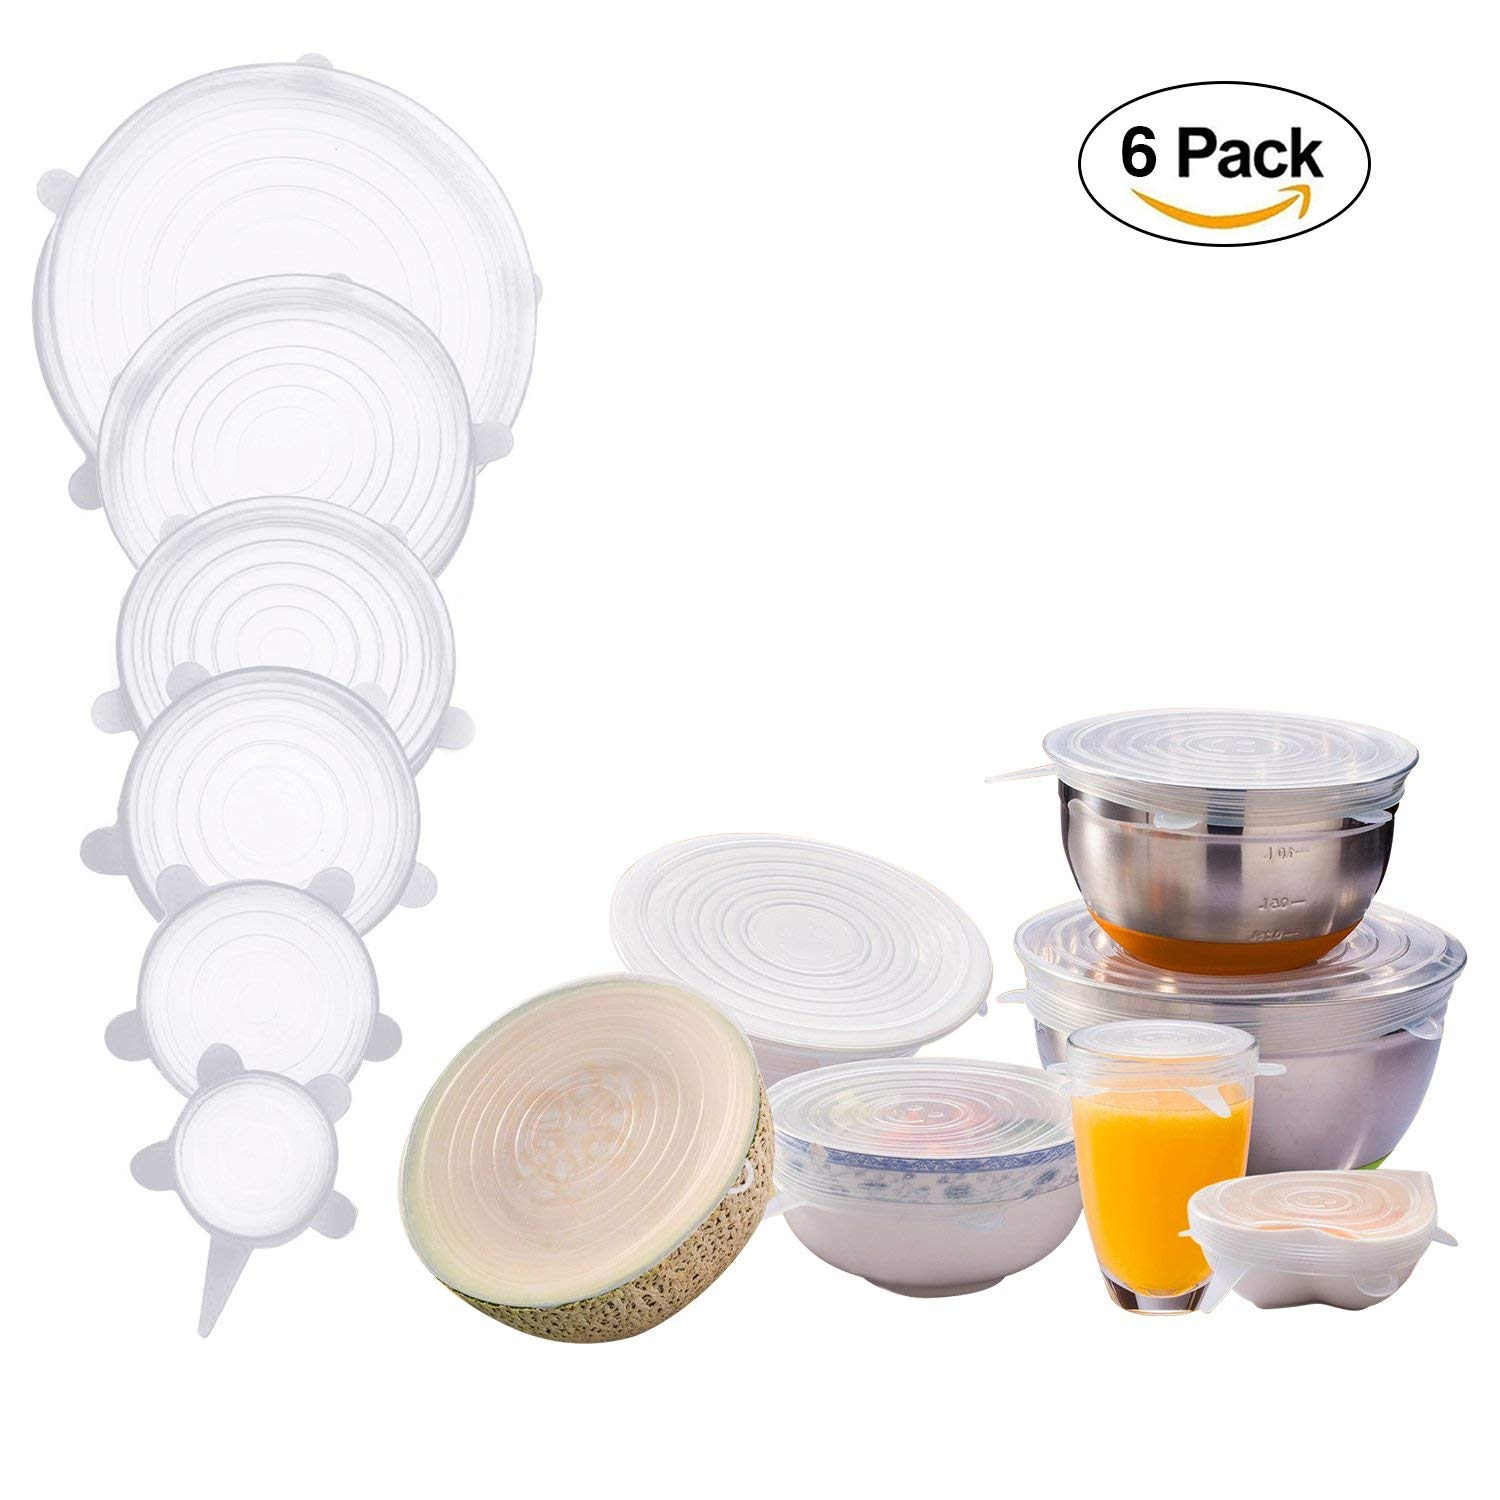 Silicone Stretch Lids, 6 Pack Reusable and Durable Flexible Silicone Sealing Food Saving Fresh-keeping Cover(2 Sets,Transparent color)